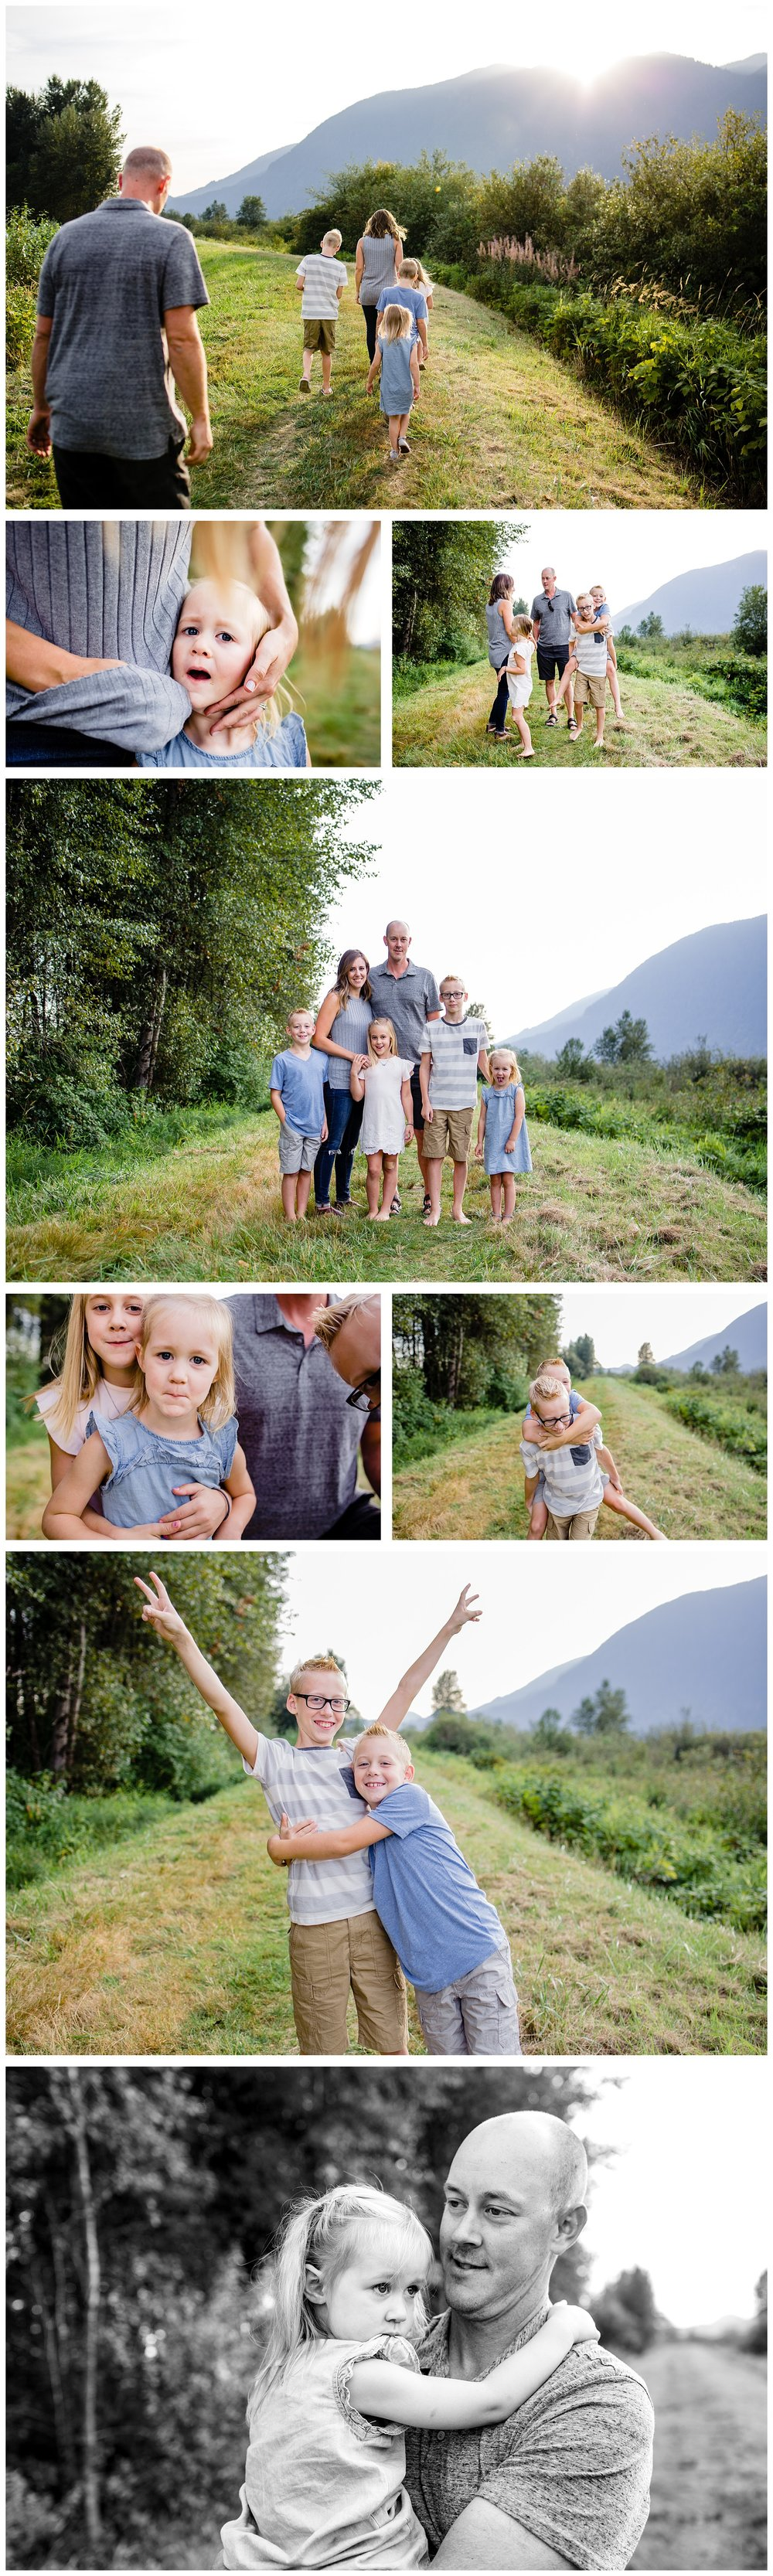 Pitt Lake Documentary Family Photographer Bubbles Mud Family of 6 Boys Girls Children_0093.jpg